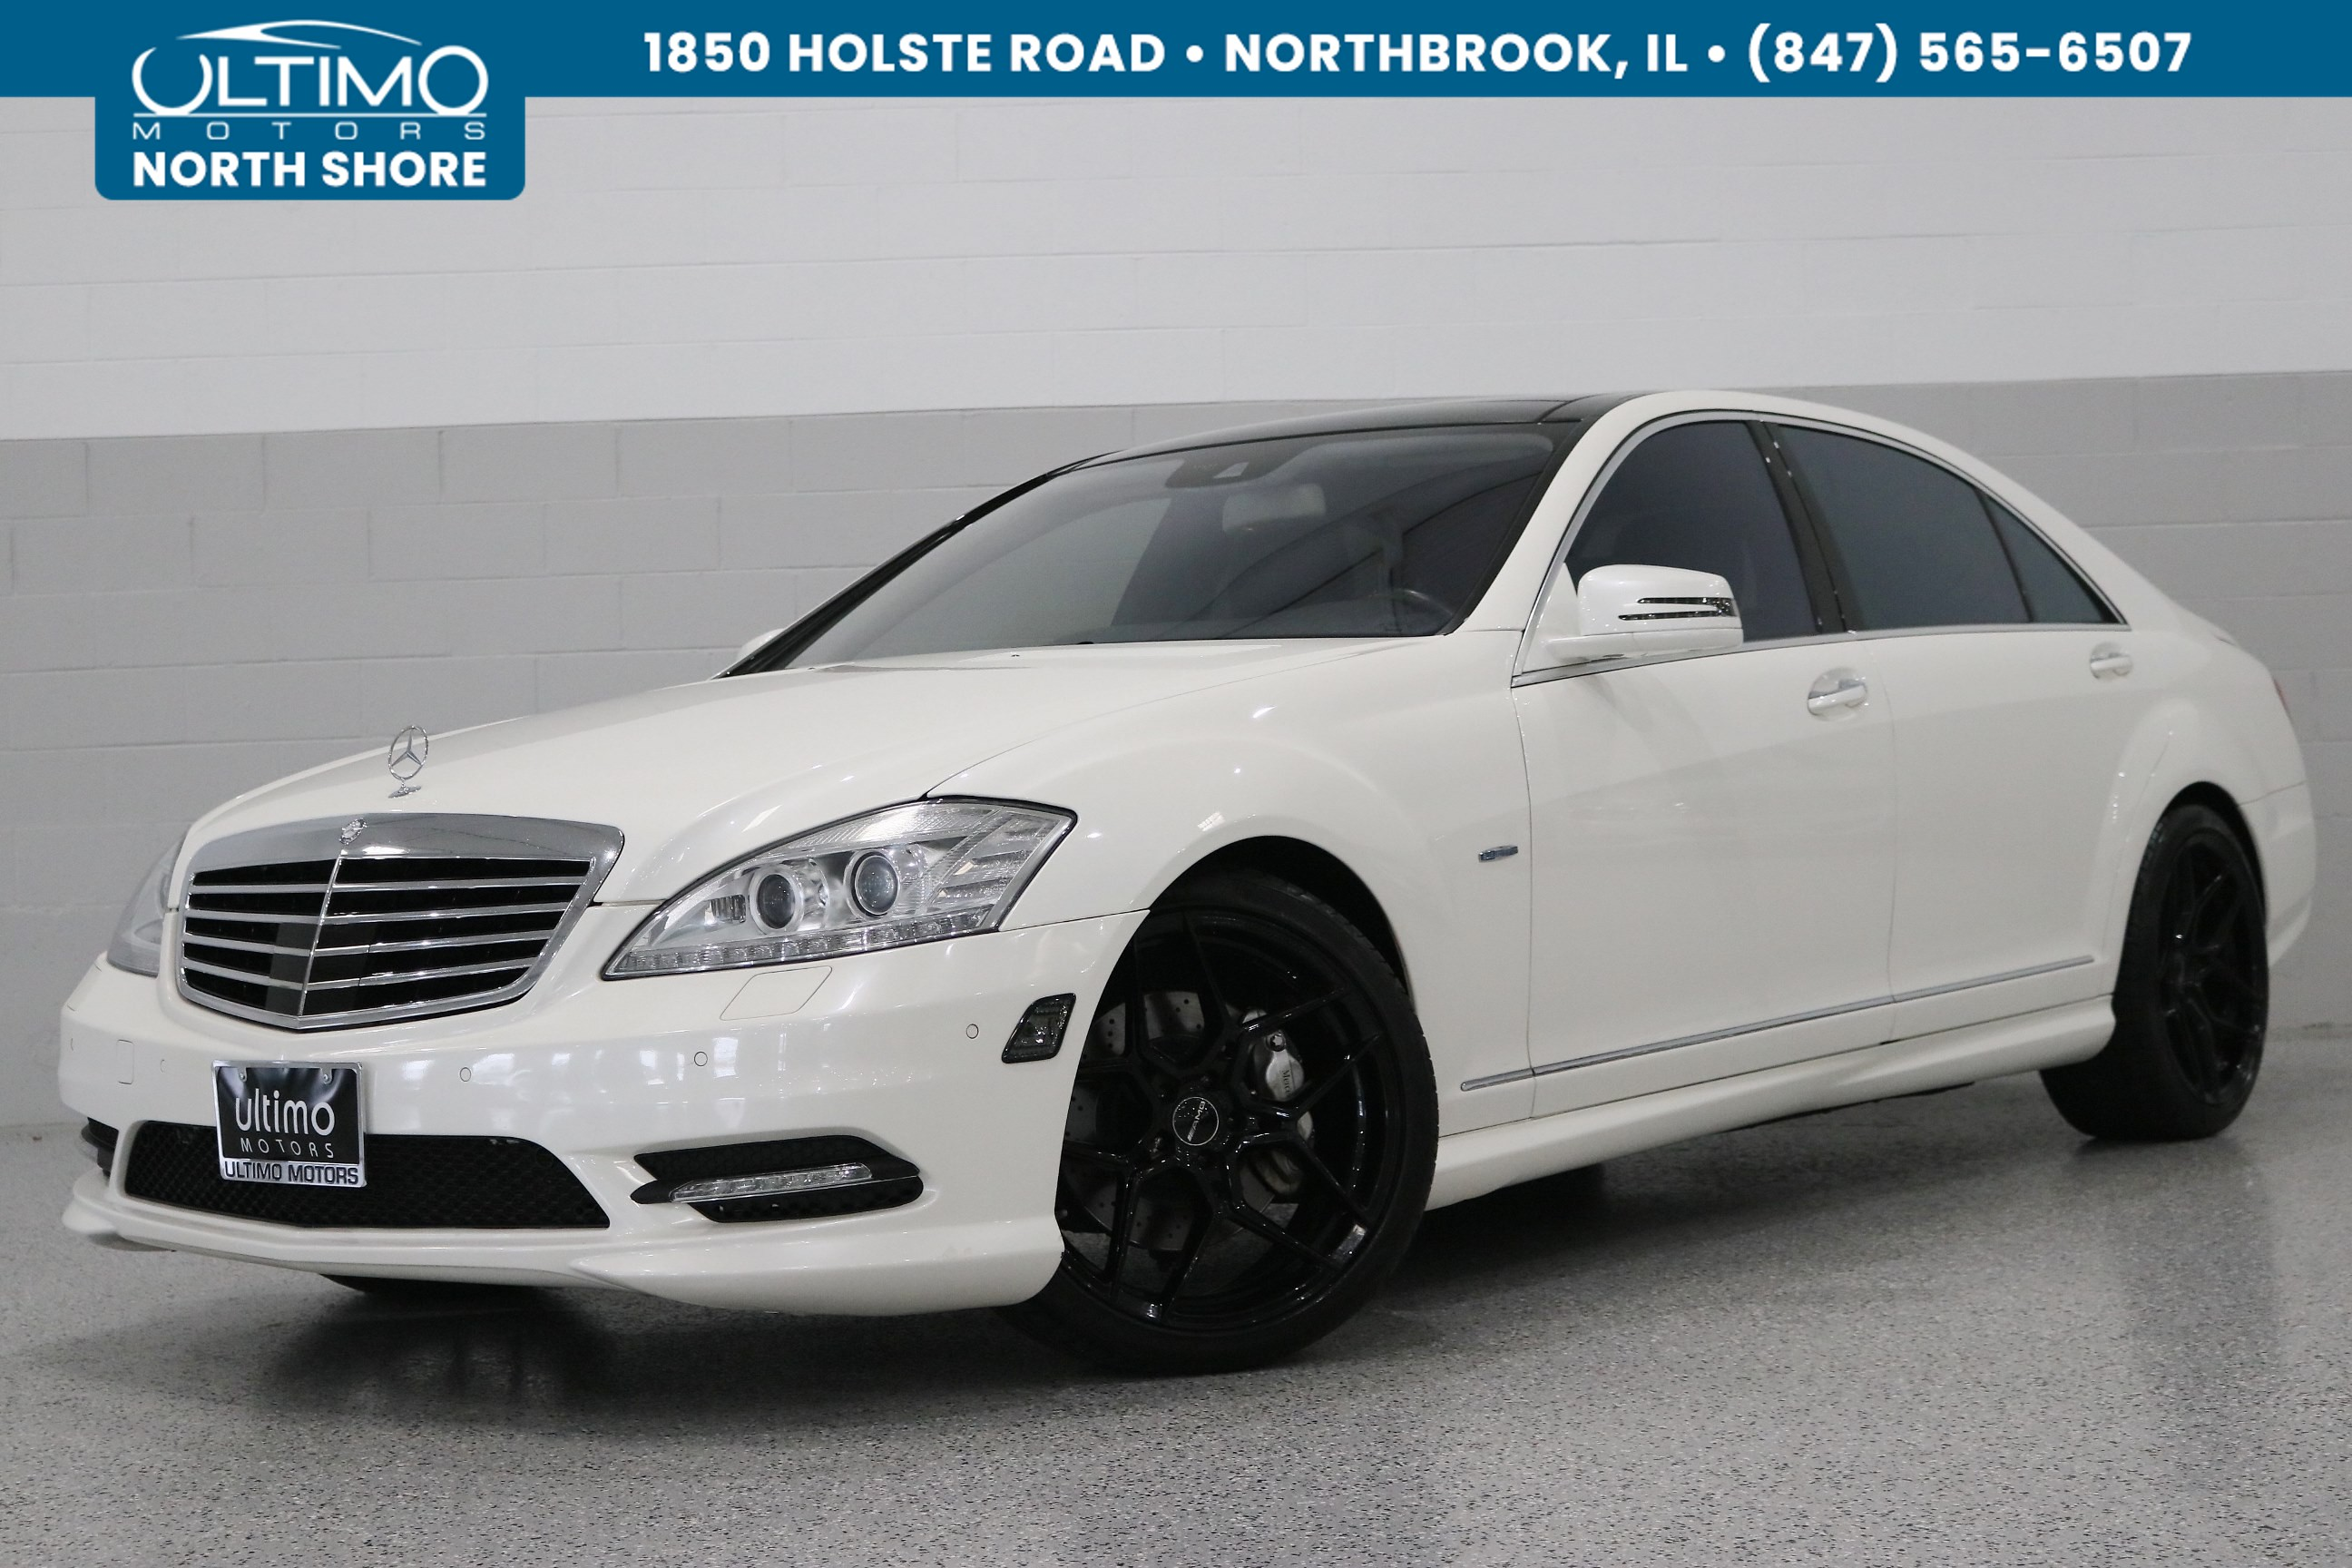 Pre-Owned 2012 Mercedes-Benz S-Class S 550, Sport, Pano Roof. Upgraded Wheels.